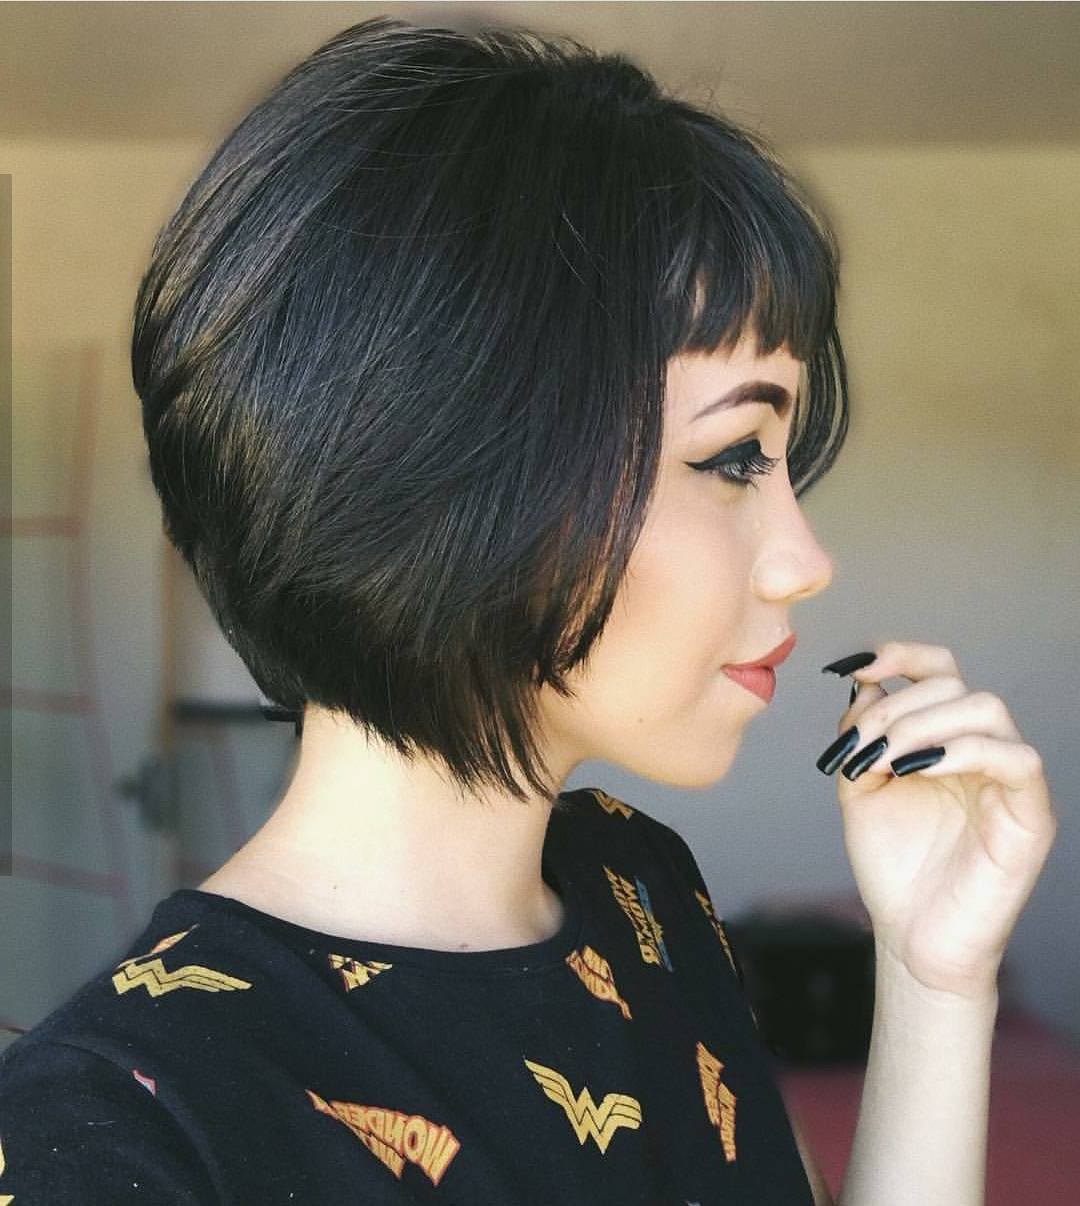 2017 Short Black Bob Hairstyles With Bangs In 10 Chic Short Bob Haircuts That Balance Your Face Shape! (View 11 of 20)